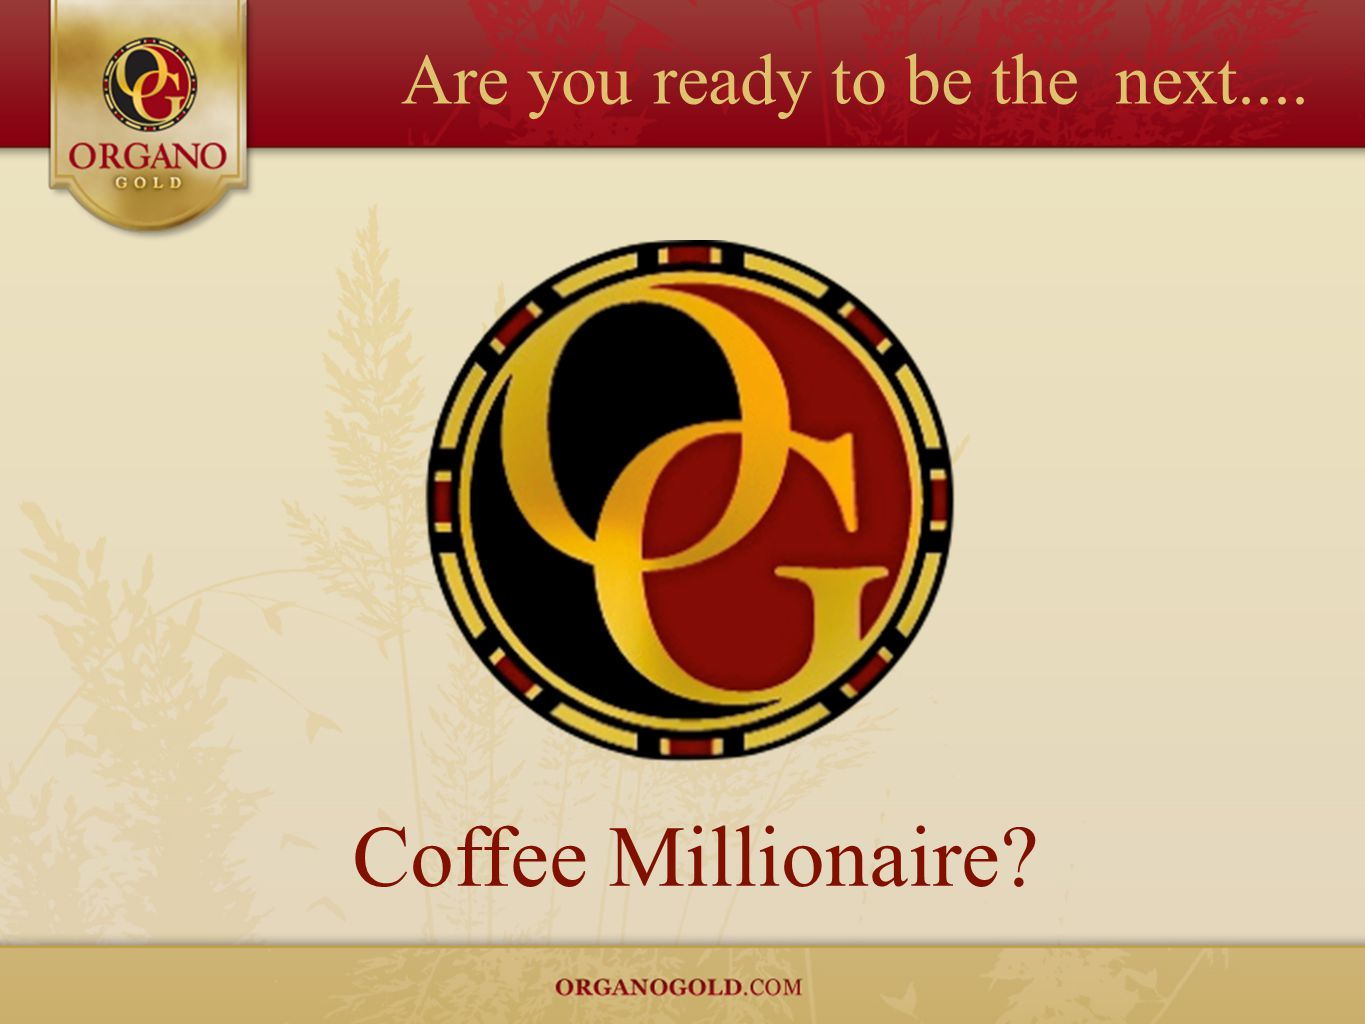 Are you ready to be the next....